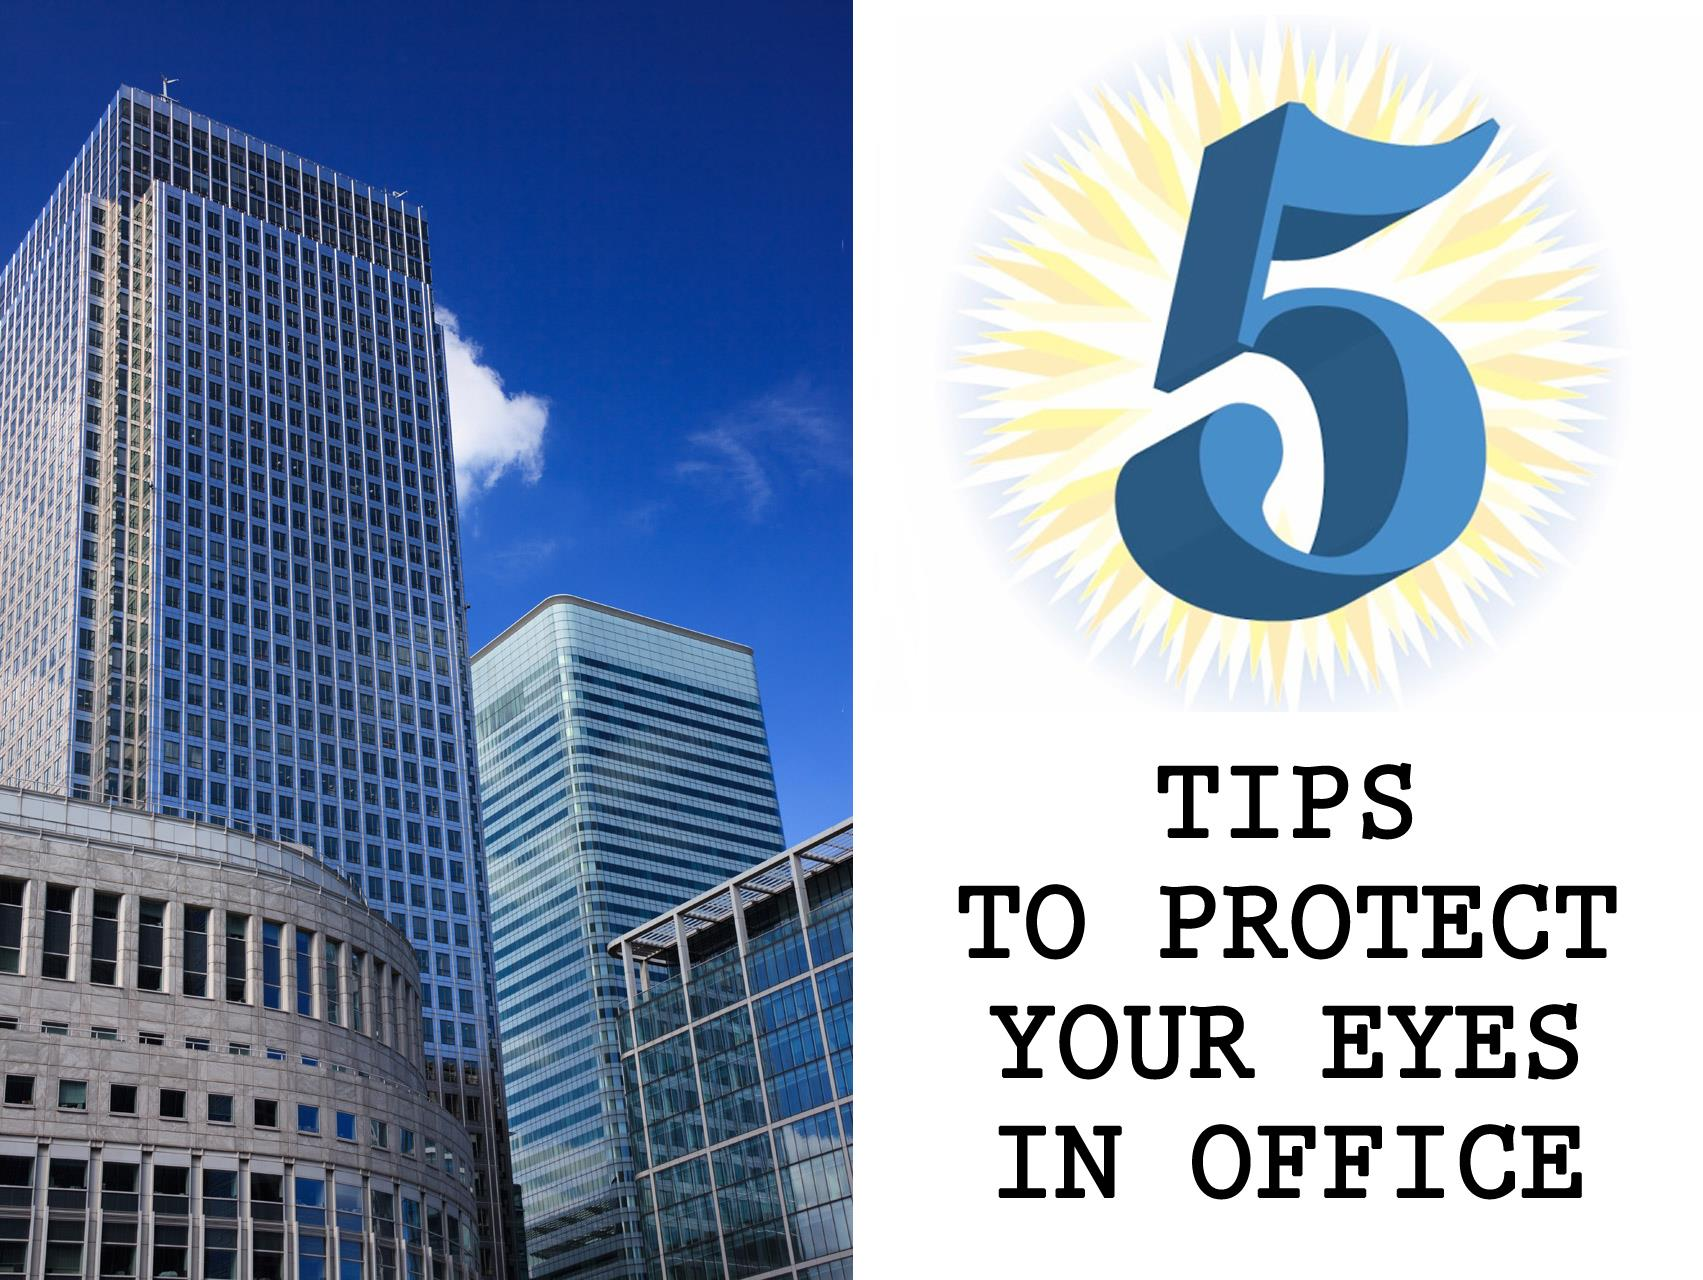 5 Tips to Protect Your Eyes in Office